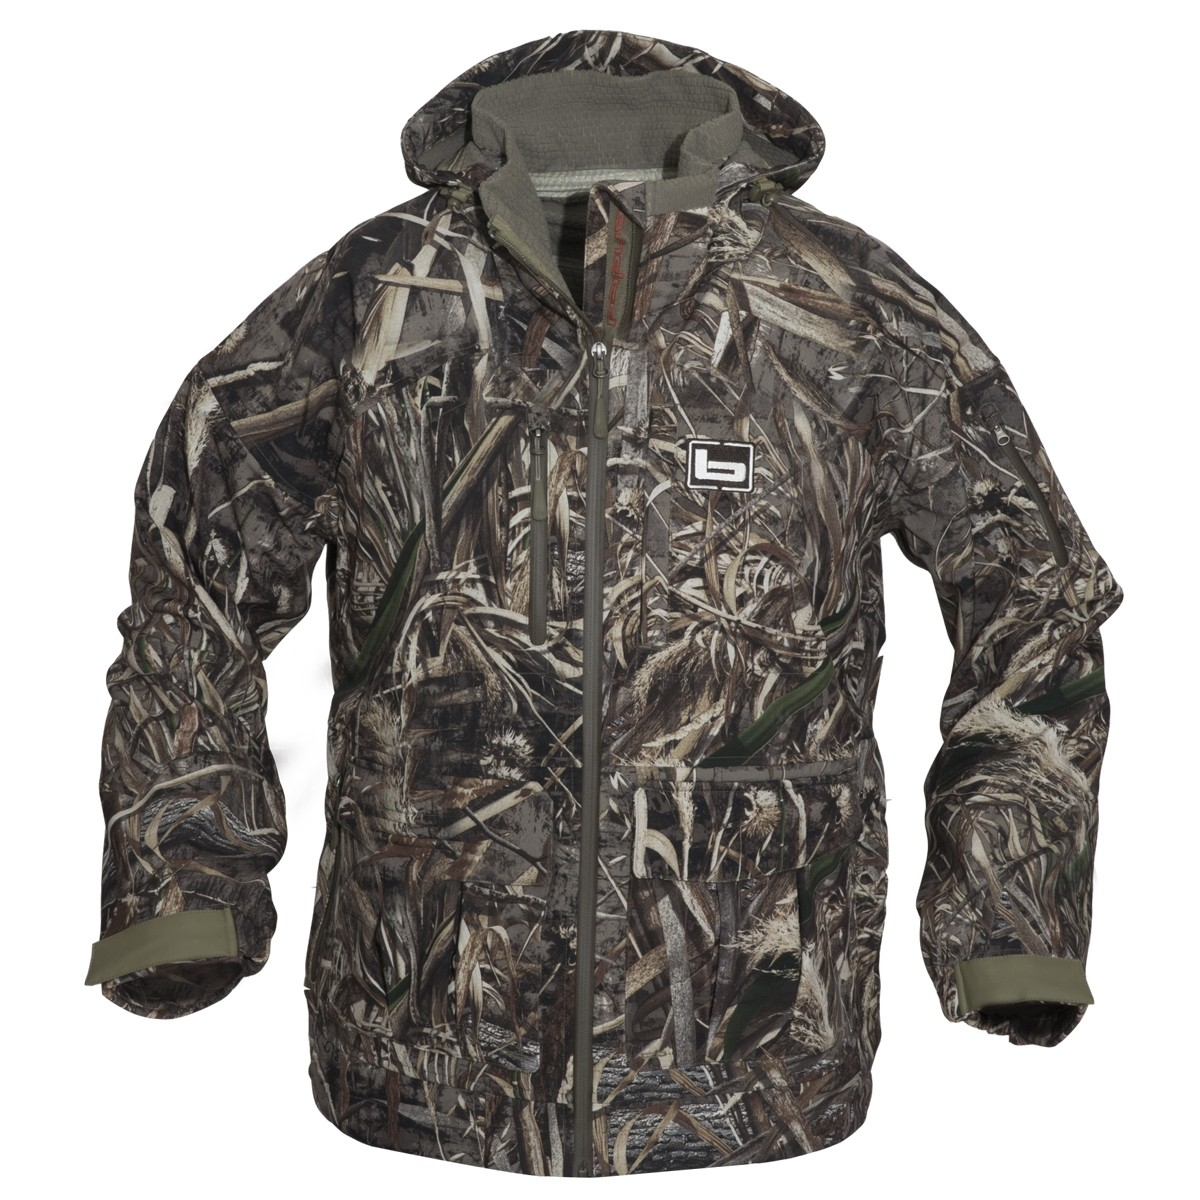 Banded Mingo Soft Shell Wader Jacket by